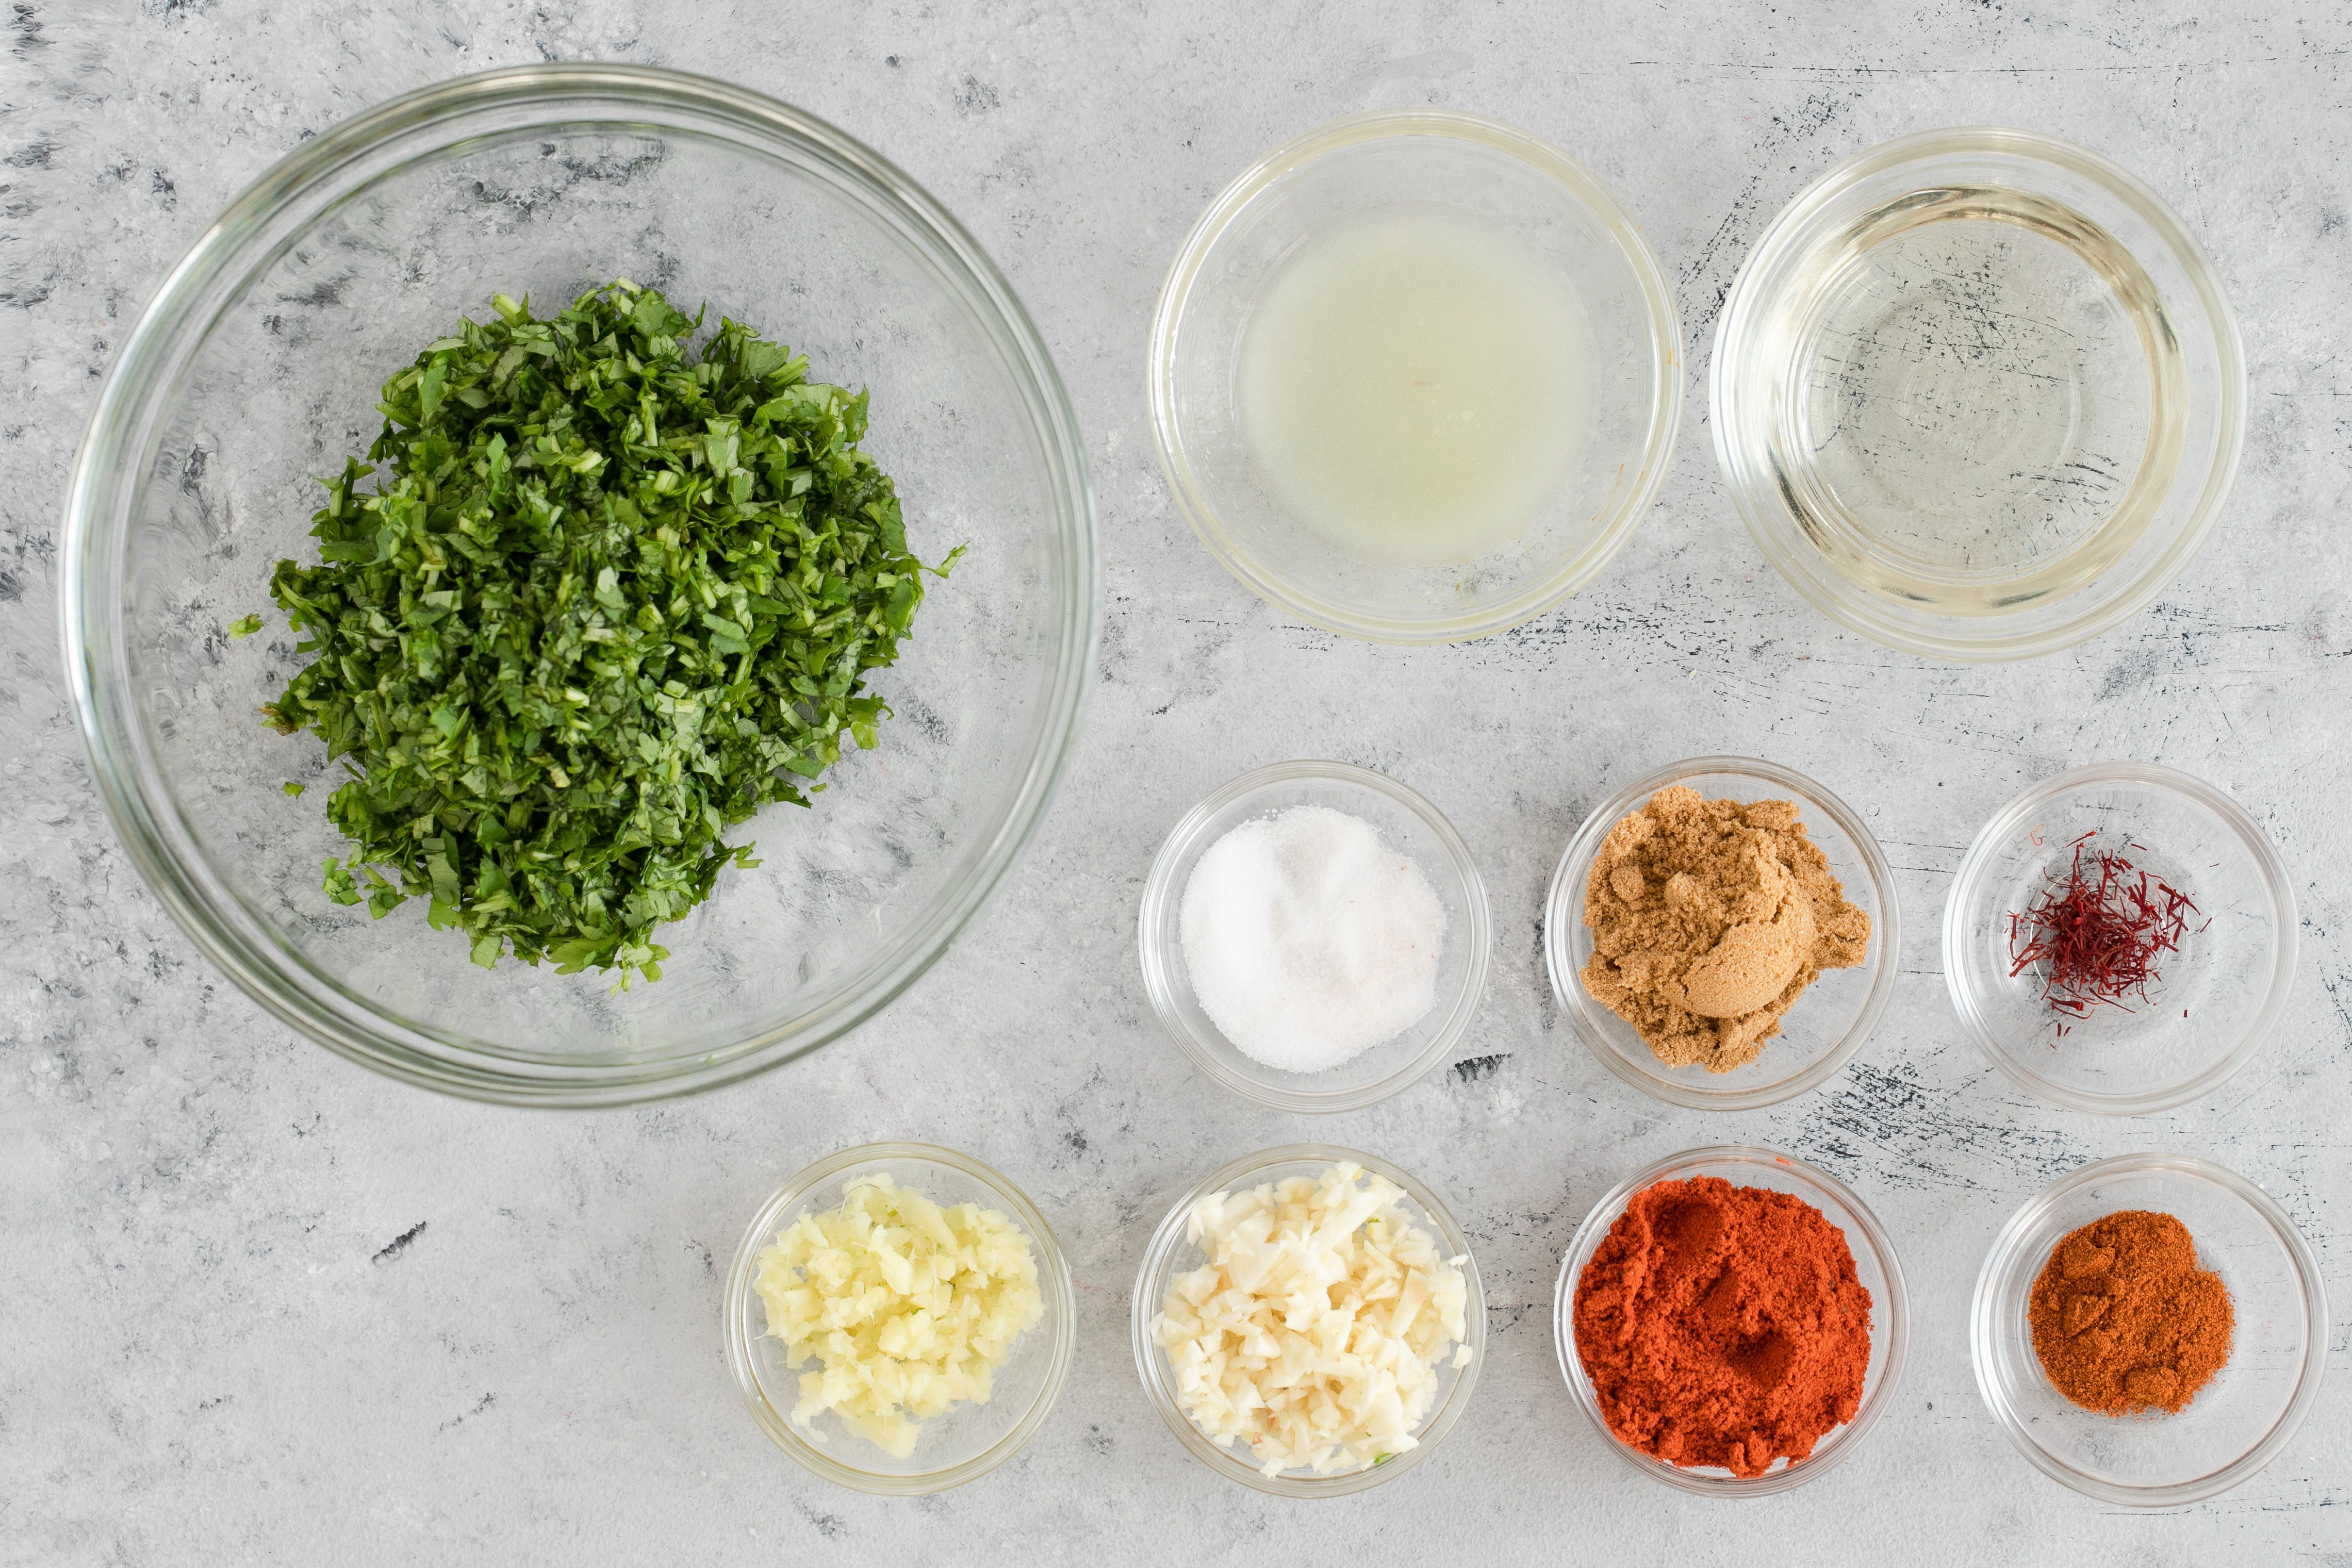 Ingredients for Chermoula